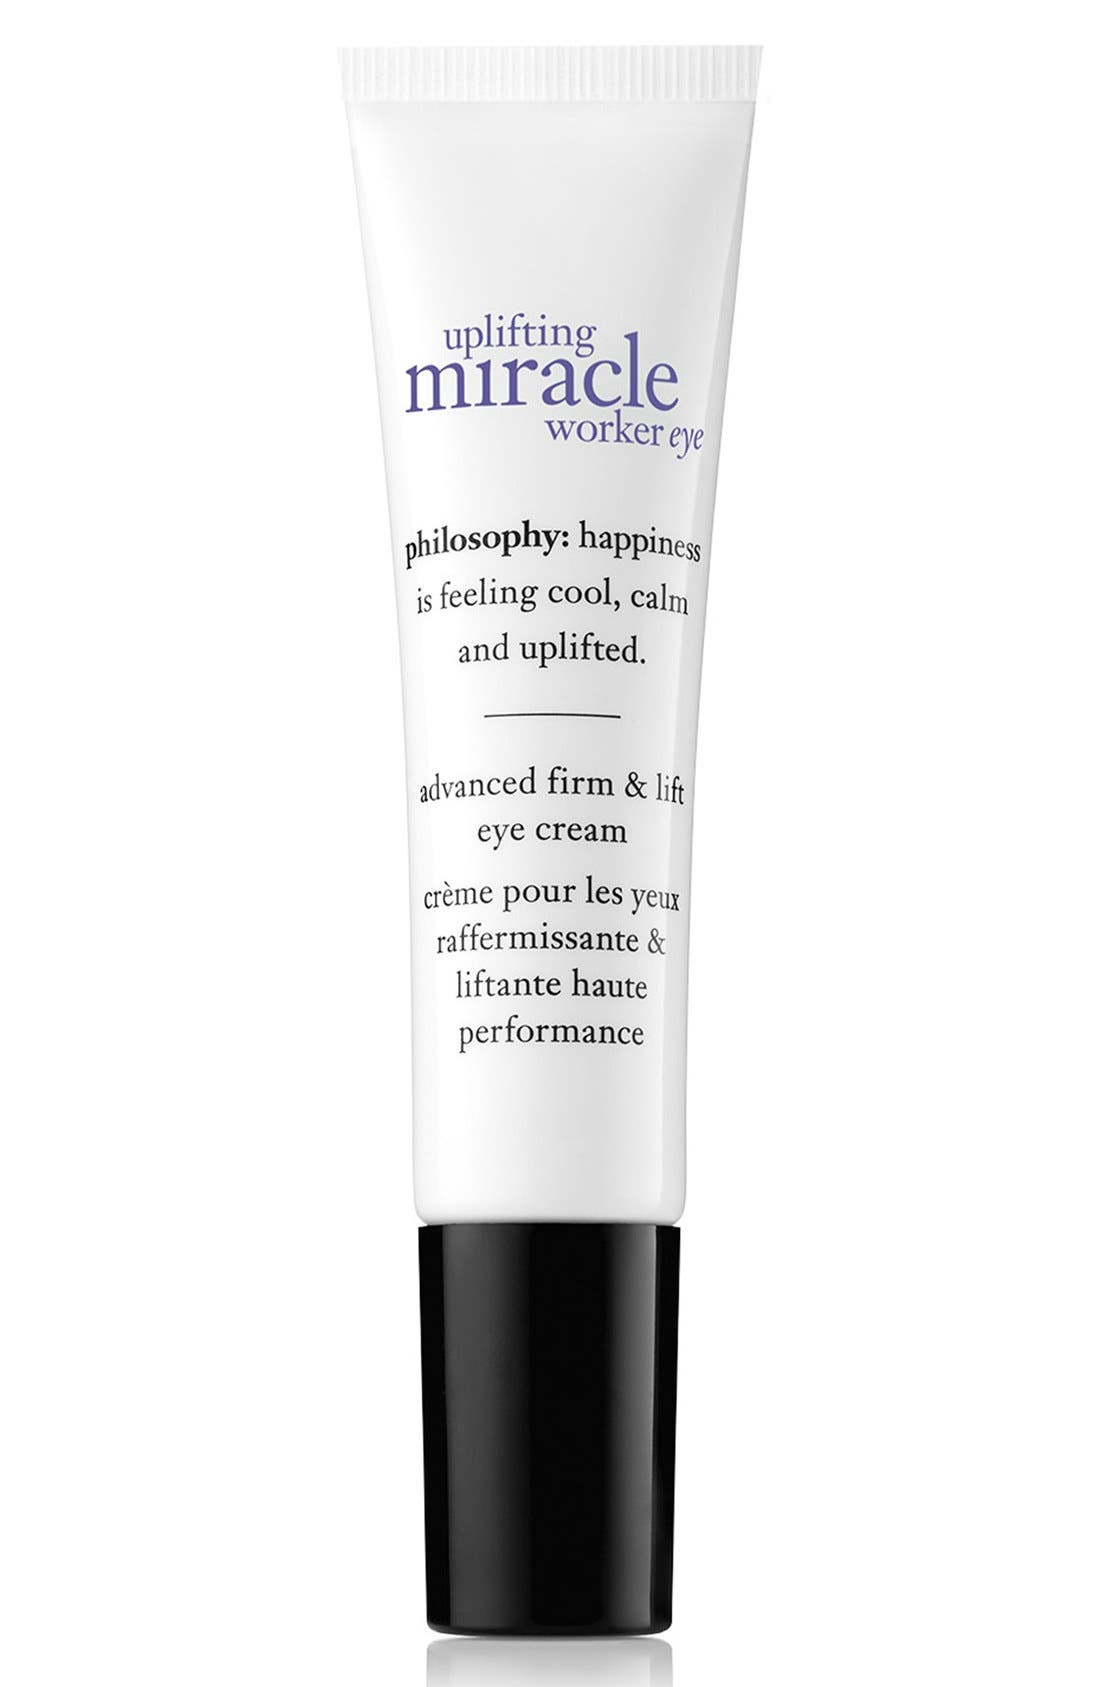 PHILOSOPHY 'uplifting miracle worker' eye cream, Main, color, NO COLOR